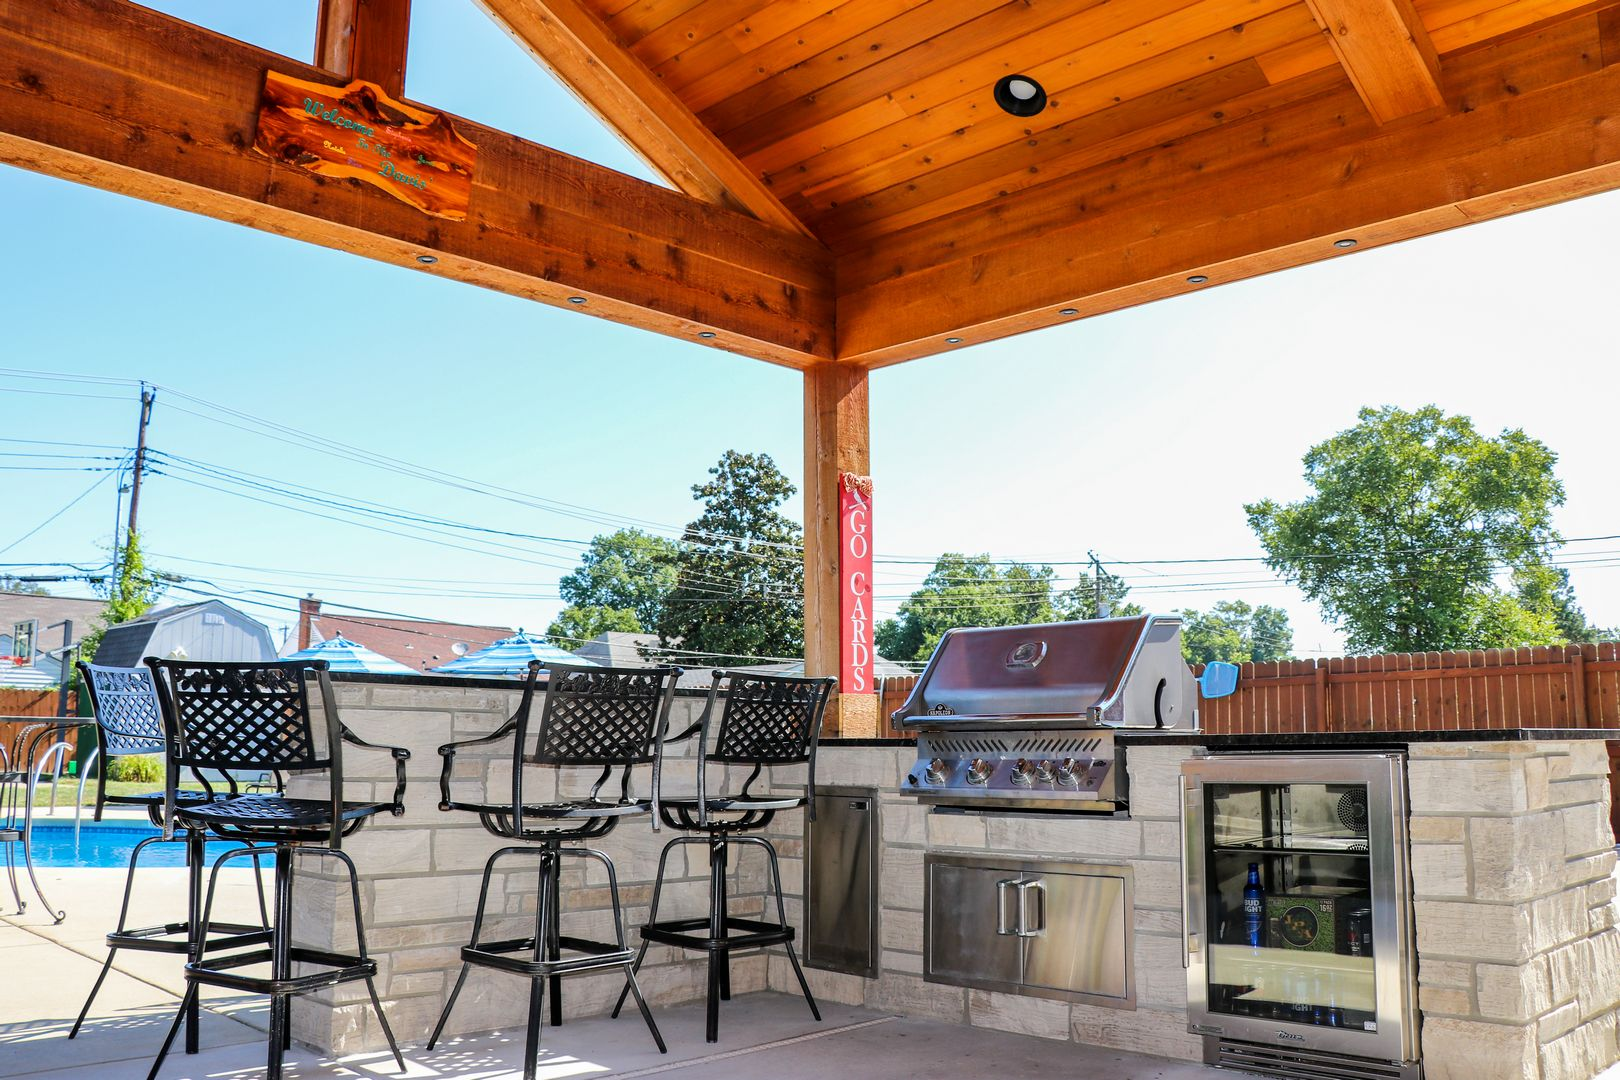 outdoor grilling and beverage center perfect for watching the Cardinals Fall Classic